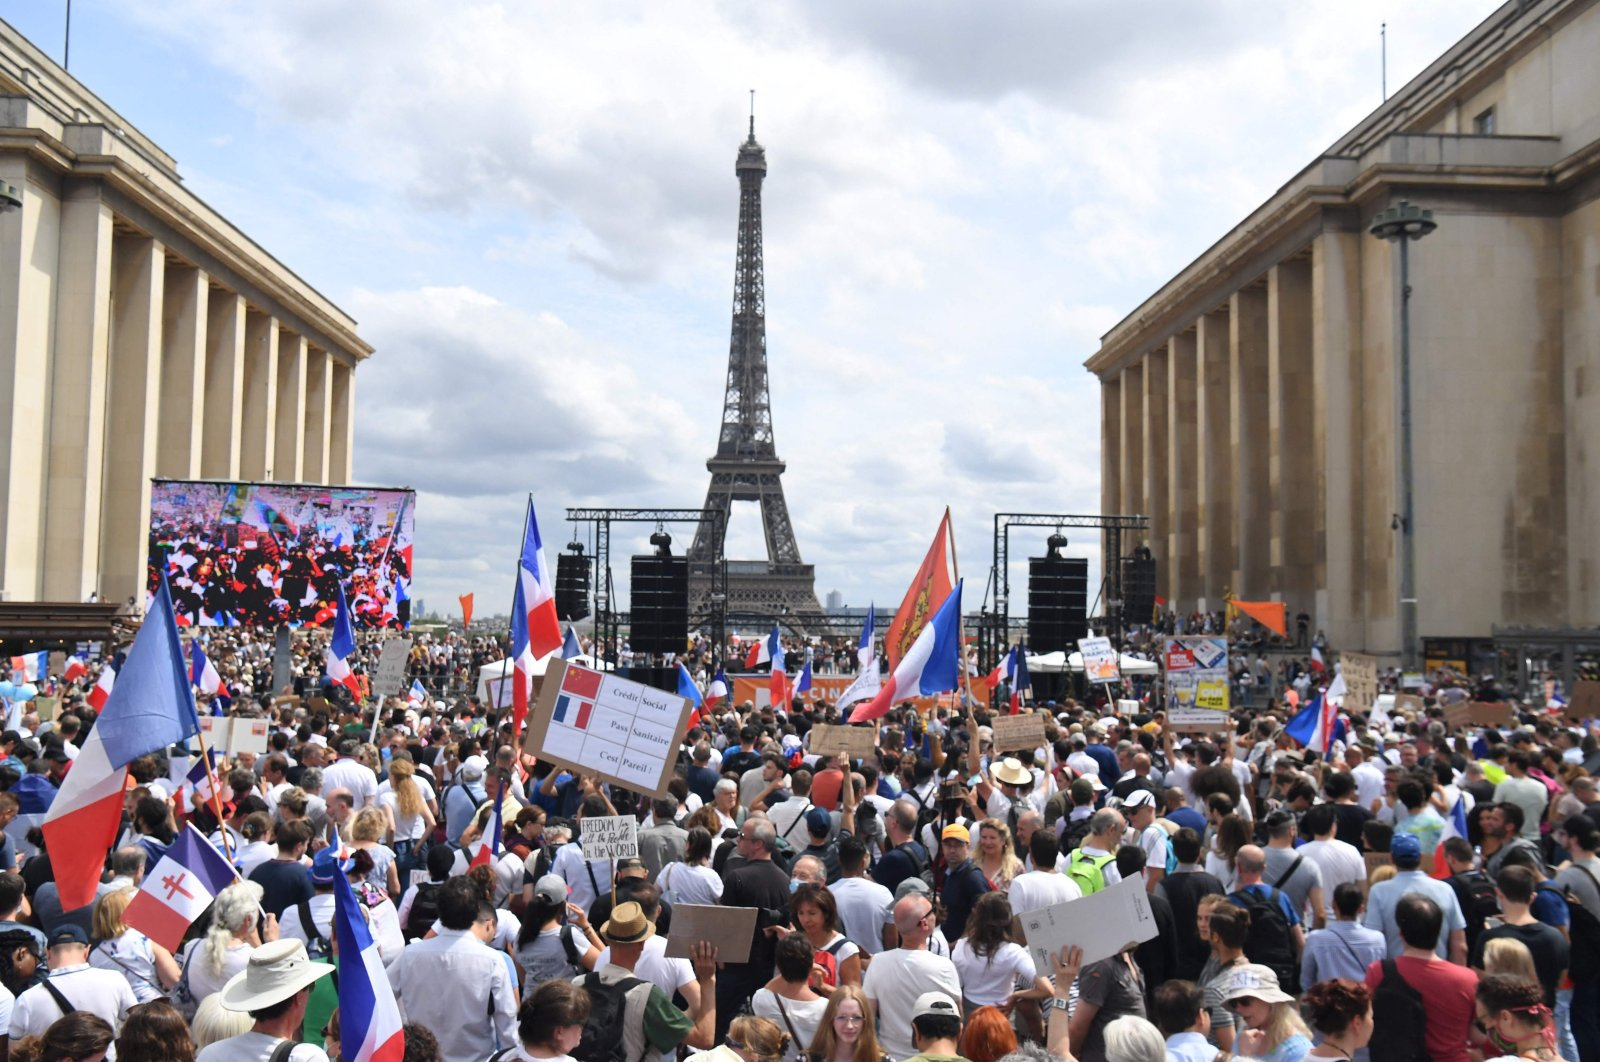 """People take part in a protest against the compulsory vaccination for certain workers and the mandatory use of the health pass called by the French government, on the """"Droits de l'homme"""" (human rights) esplanade at the Trocadero Square, in front of the Eiffel Tower in Paris, France, July 24, 2021. (AFP Photo)"""